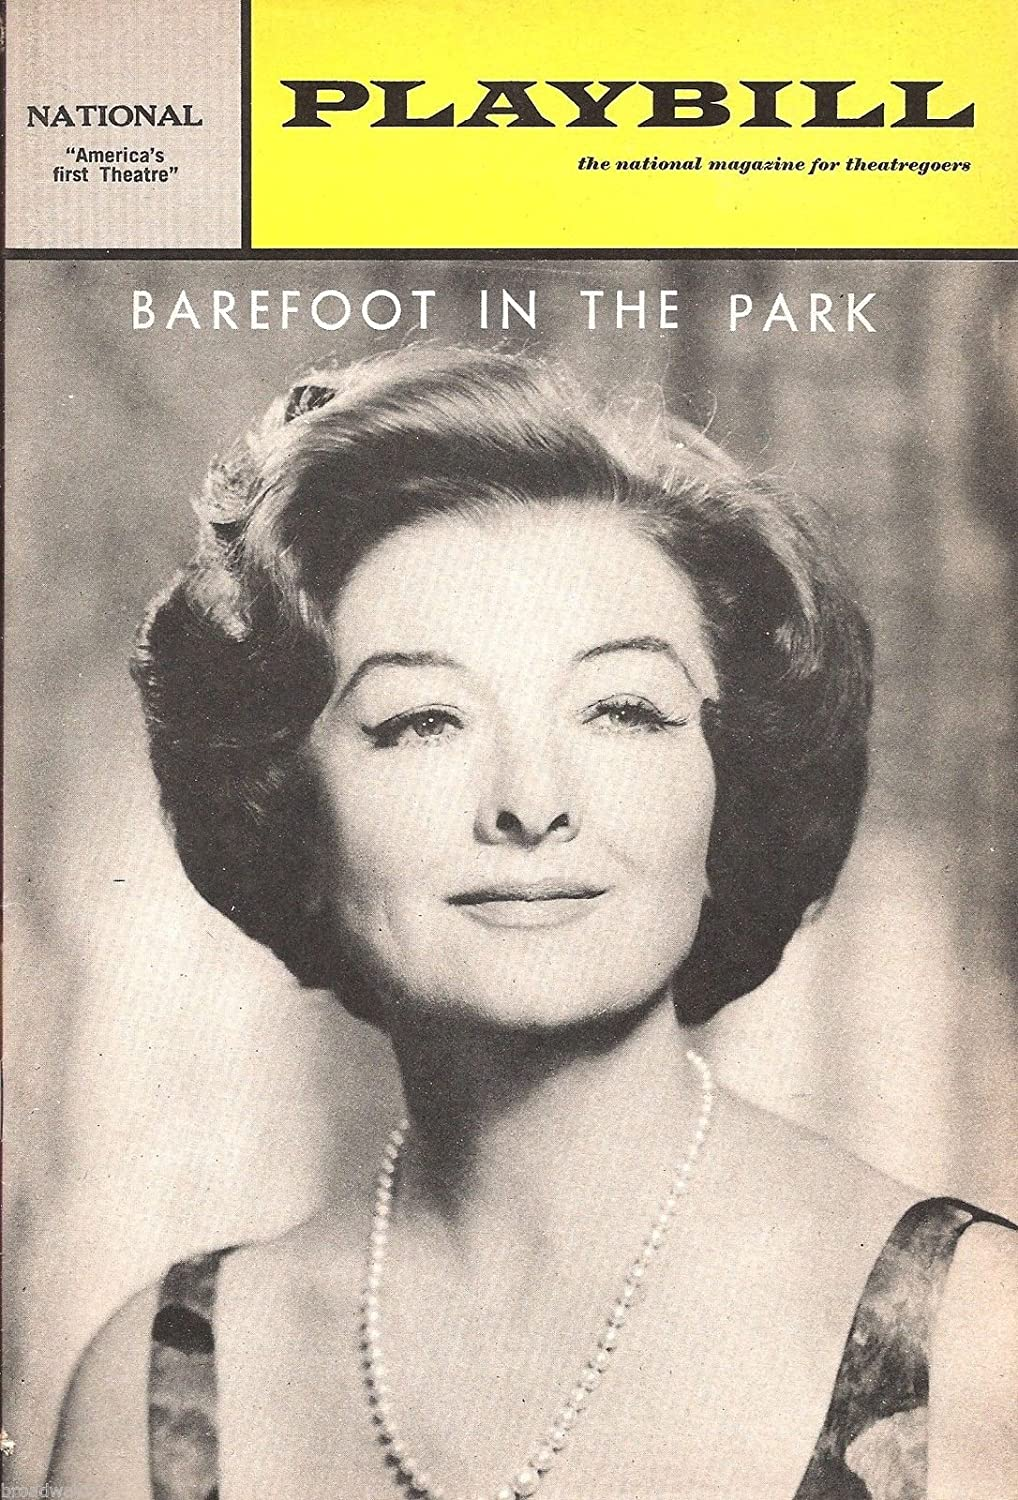 Myrna Loy'BAREFOOT IN THE PARK' Neil Simon 1966 Washington, D.C. Playbill